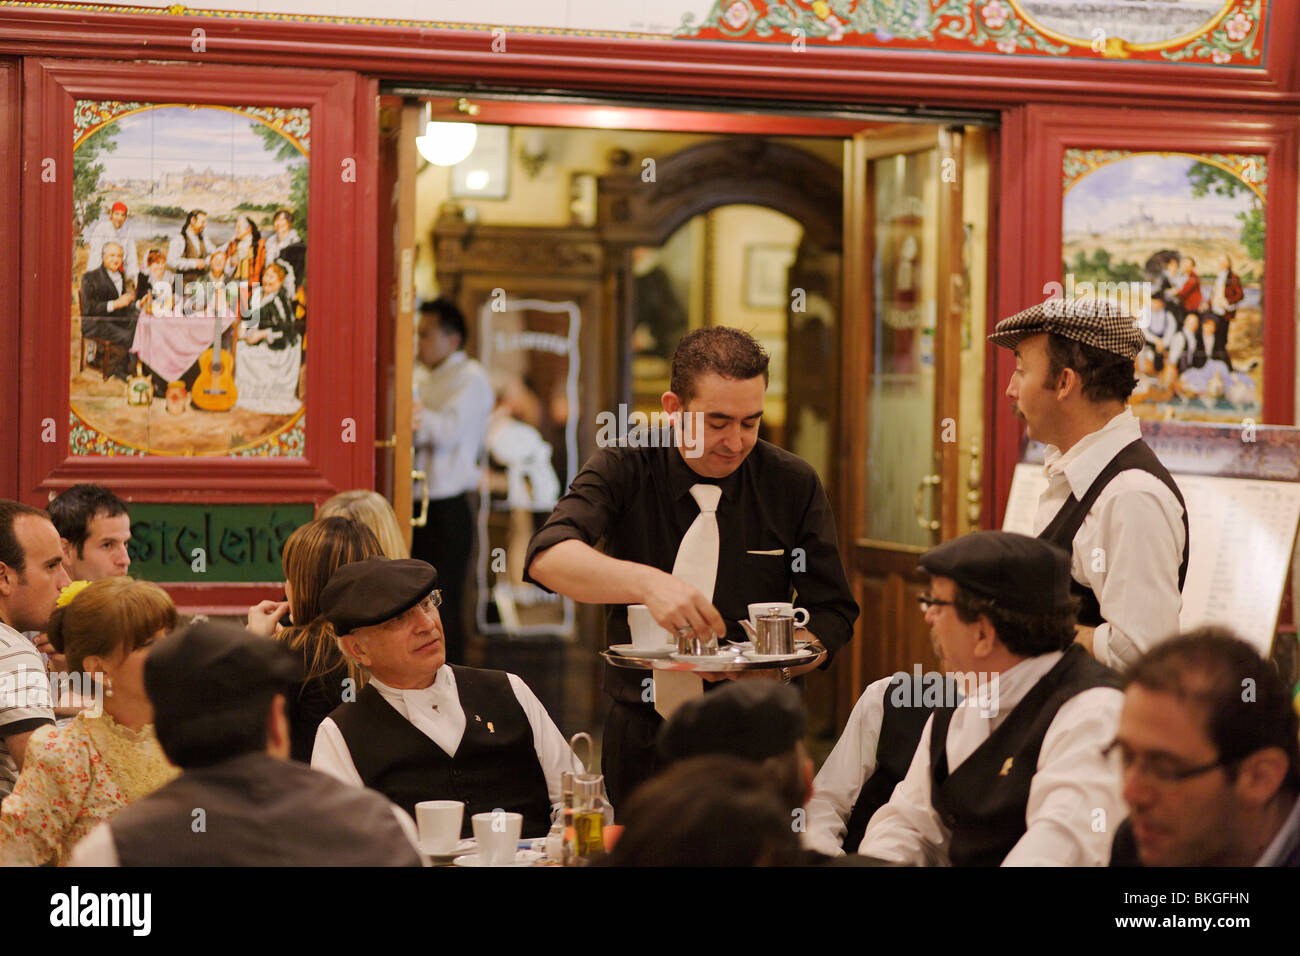 Waiter serving coffee in a pavement cafe, Fiestas de San Isidro Labrador, Madrid, Spain - Stock Image